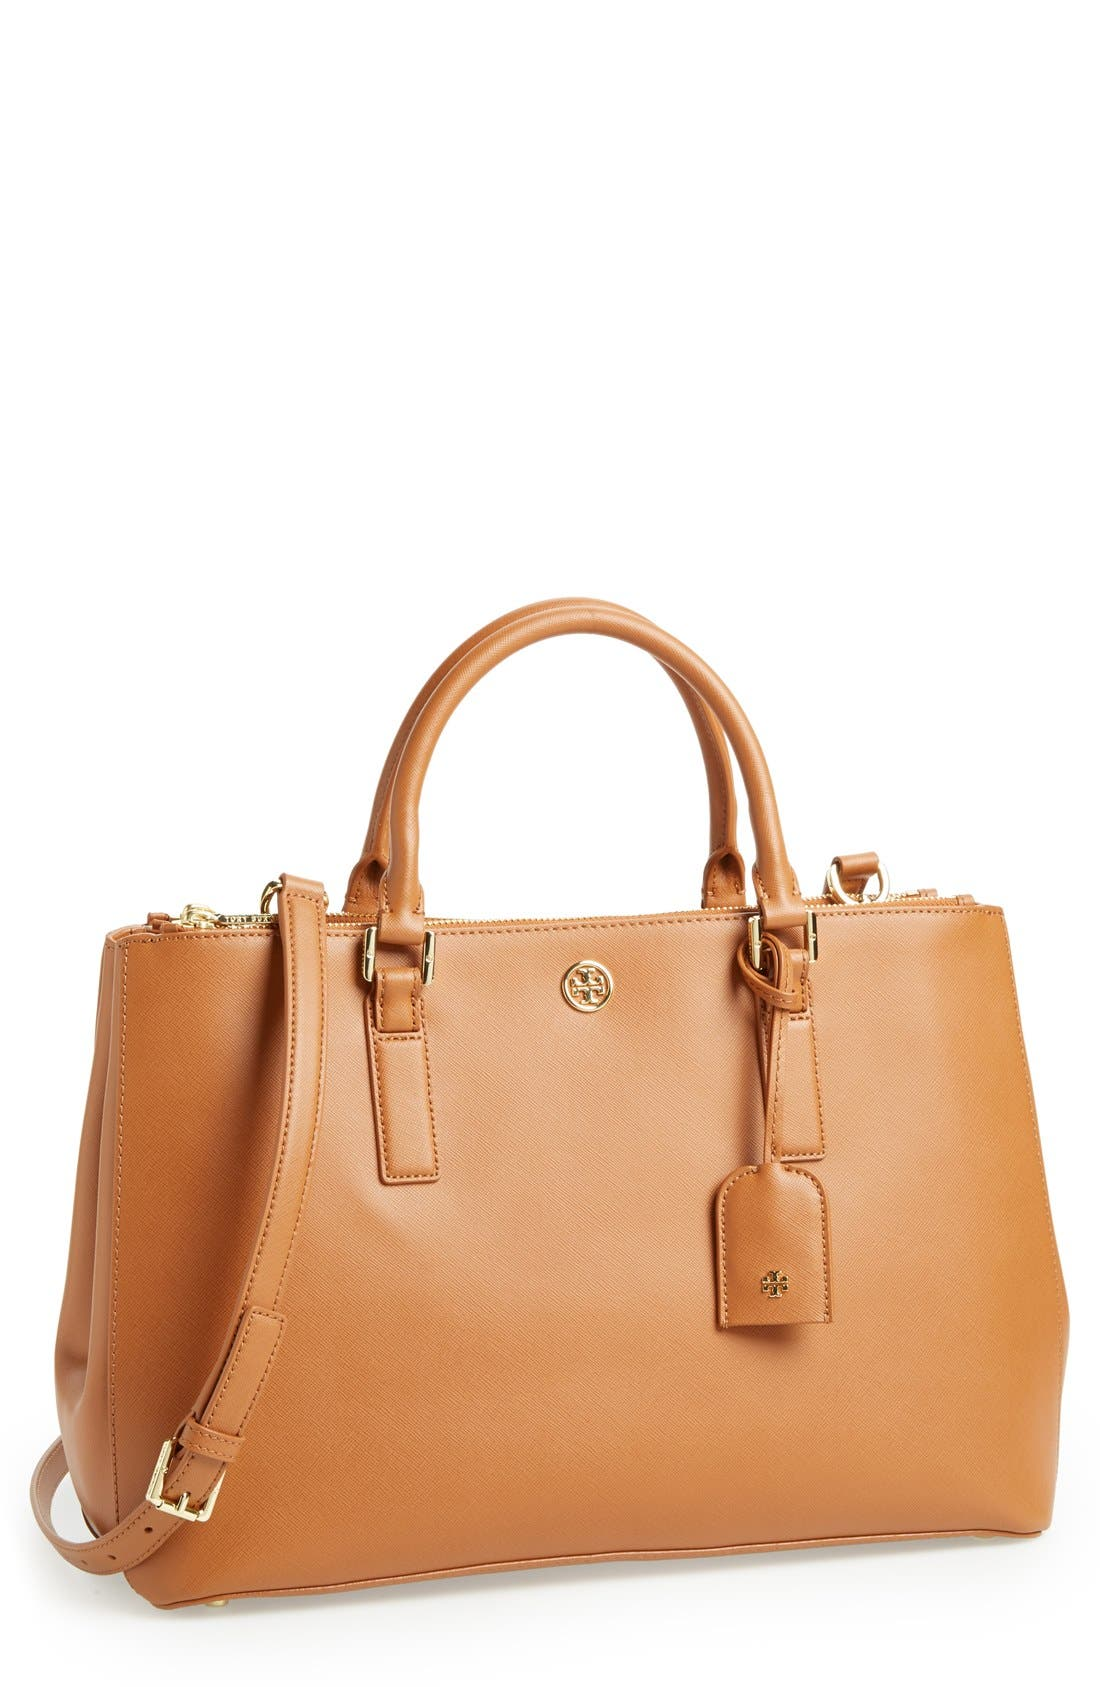 'Robinson' Double Zip Tote,                         Main,                         color, Luggage